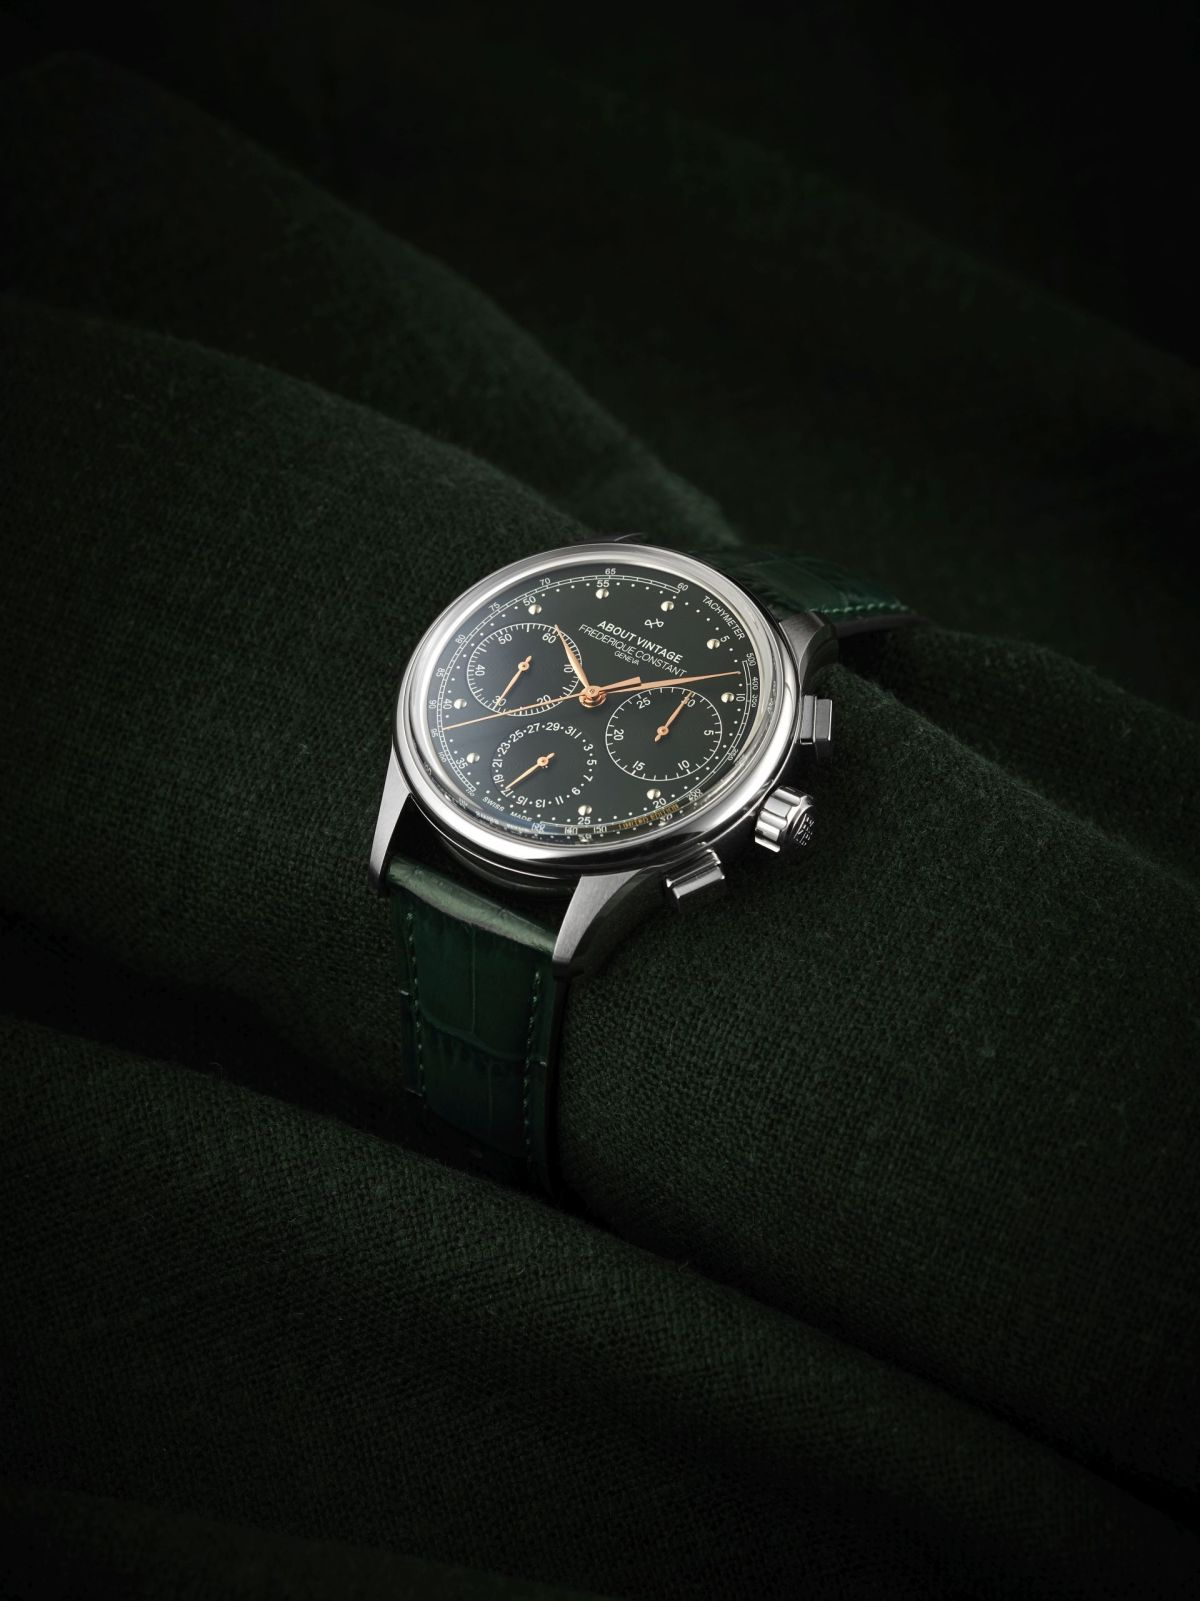 Frederique-Constant-Flyback-Chronograph-Manufacture-About-Vintage-Special-Edition-3.jpg